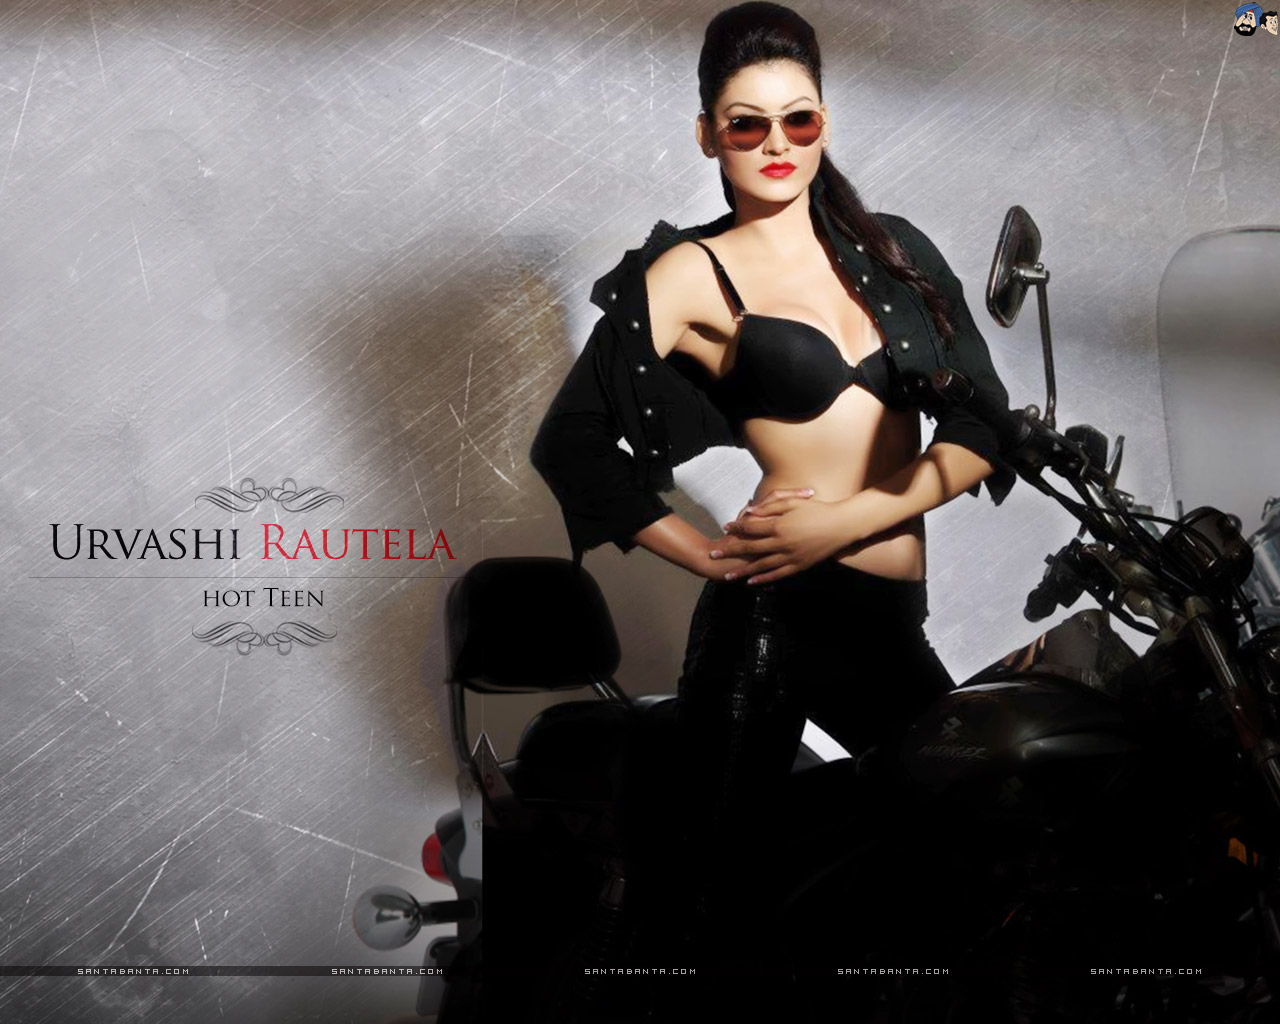 Urvashi Rautela Hd Wallpapers  Most Beautiful Places In -1132